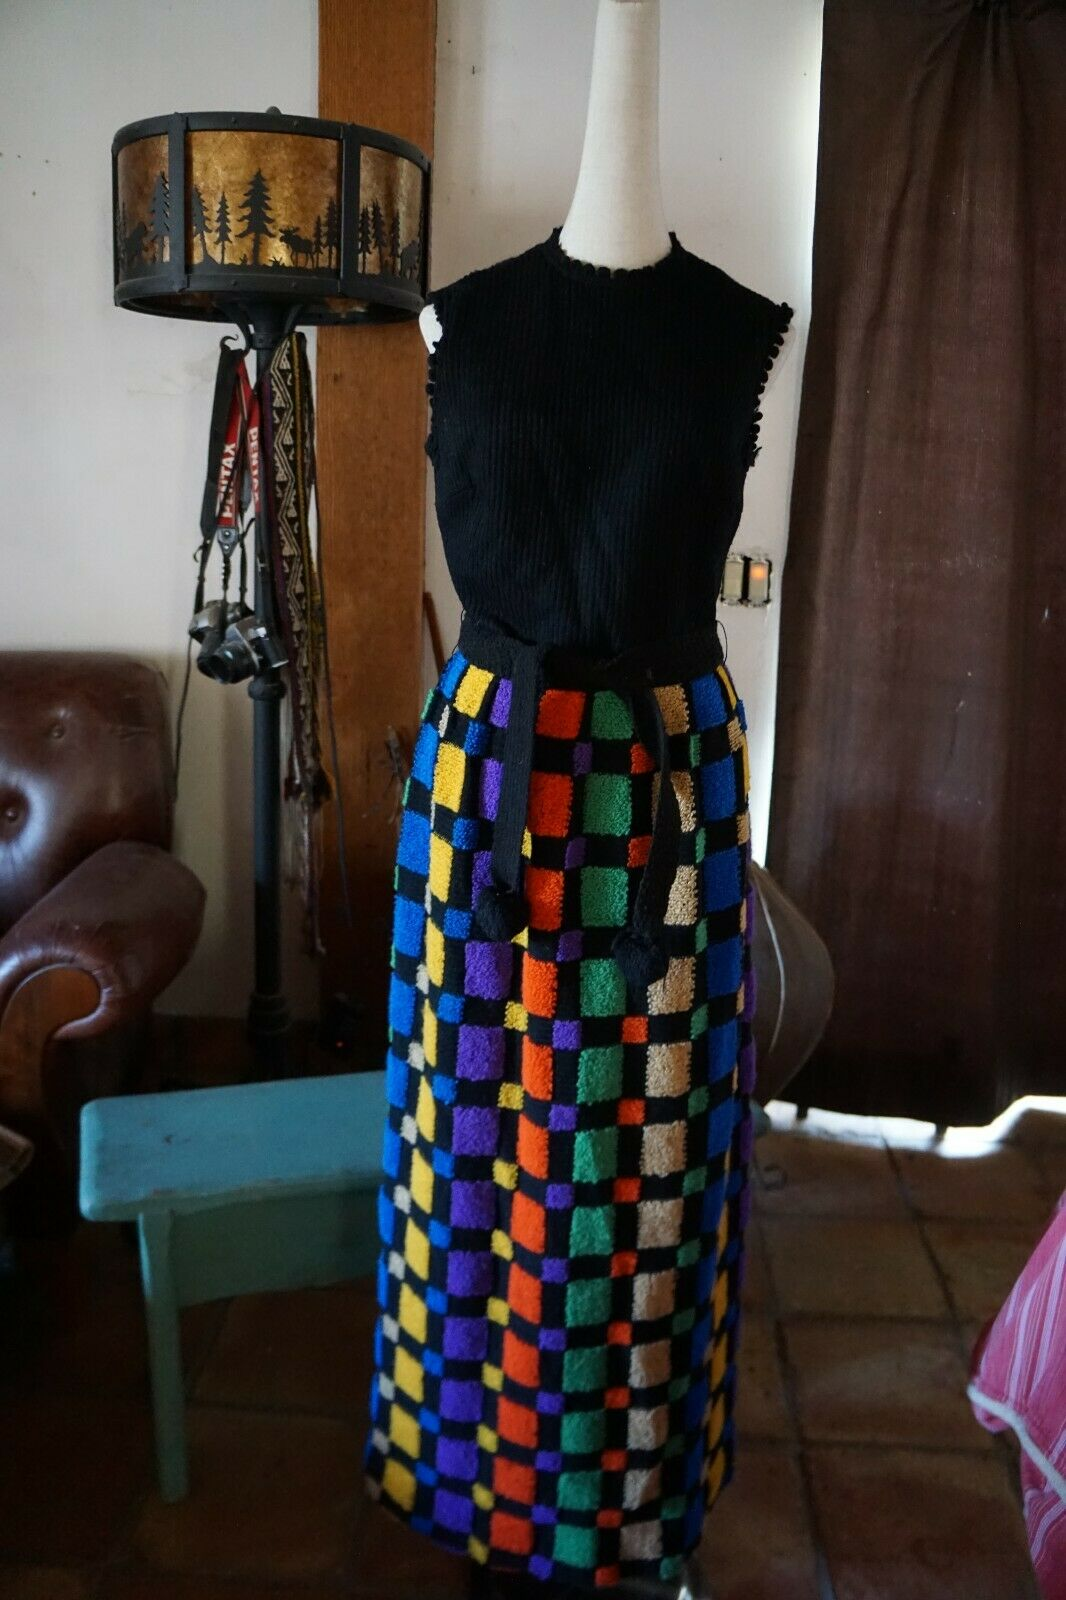 Vintage PARADE New York Top Form Fitting Sweater Style Long colorful Dress S 10